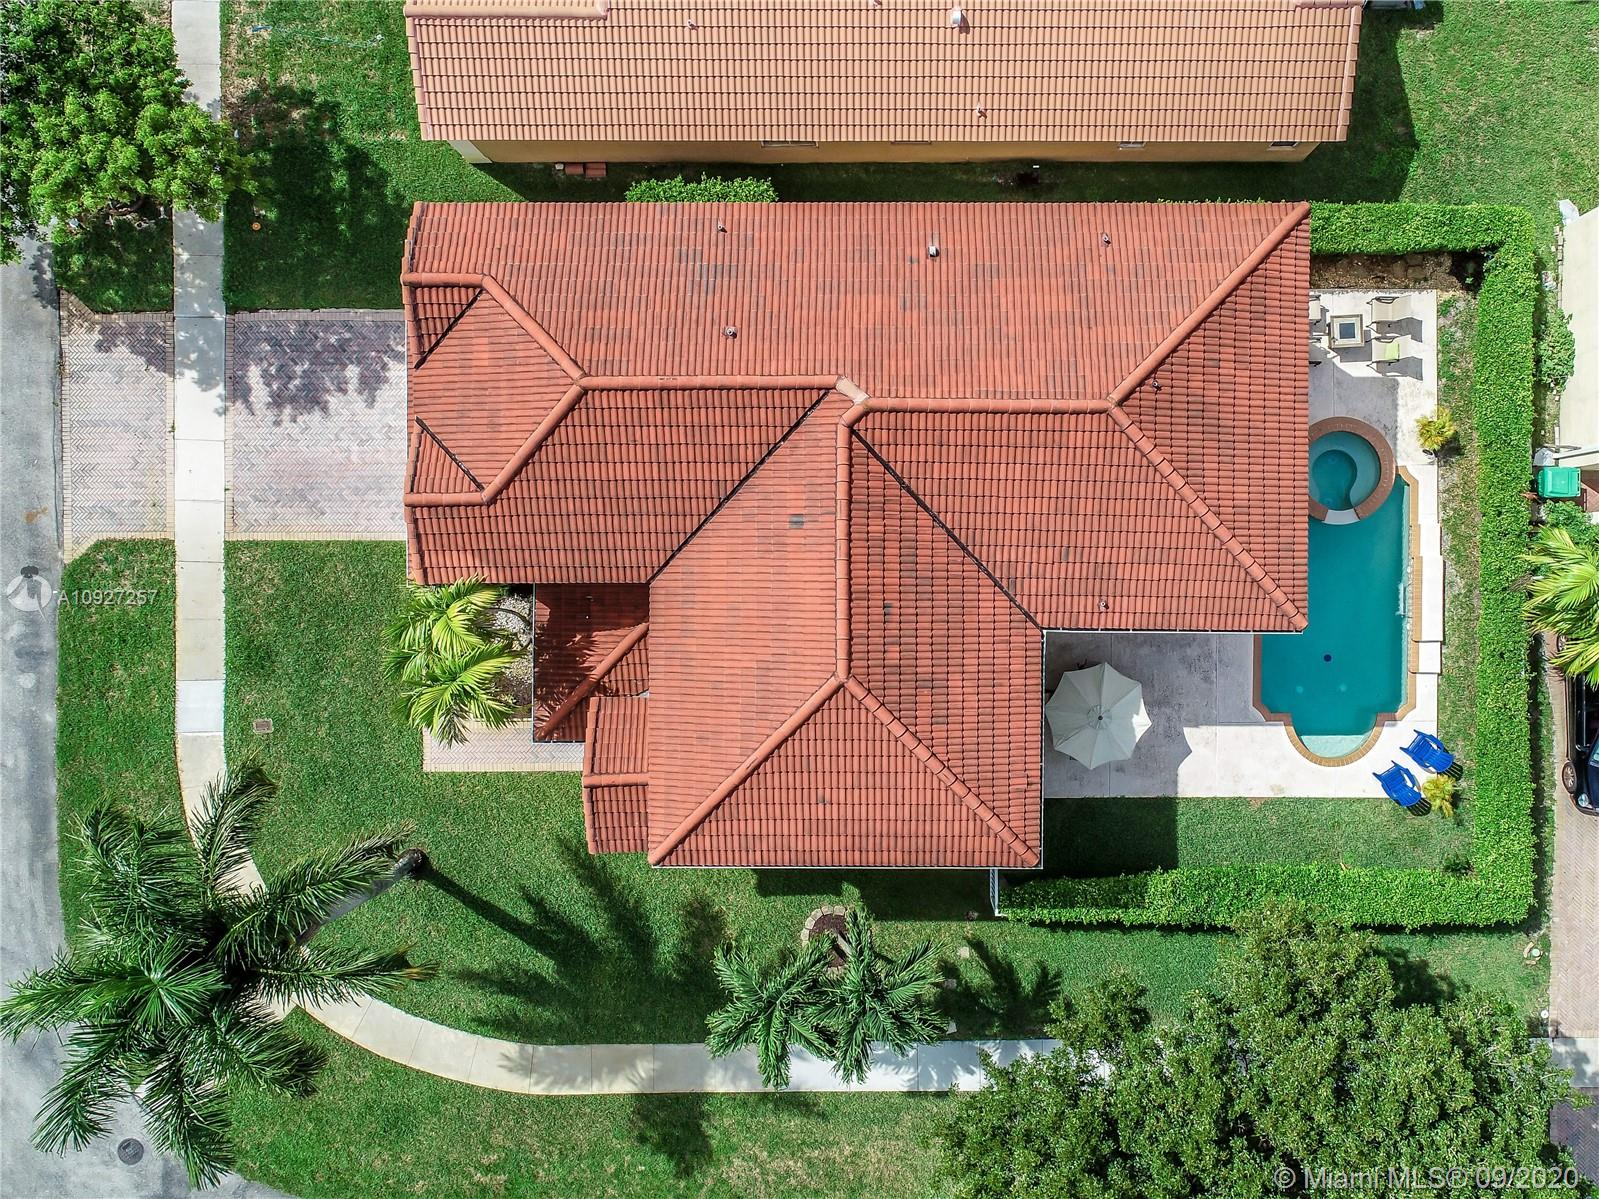 Details for 2706 129th Ave, Miramar, FL 33027